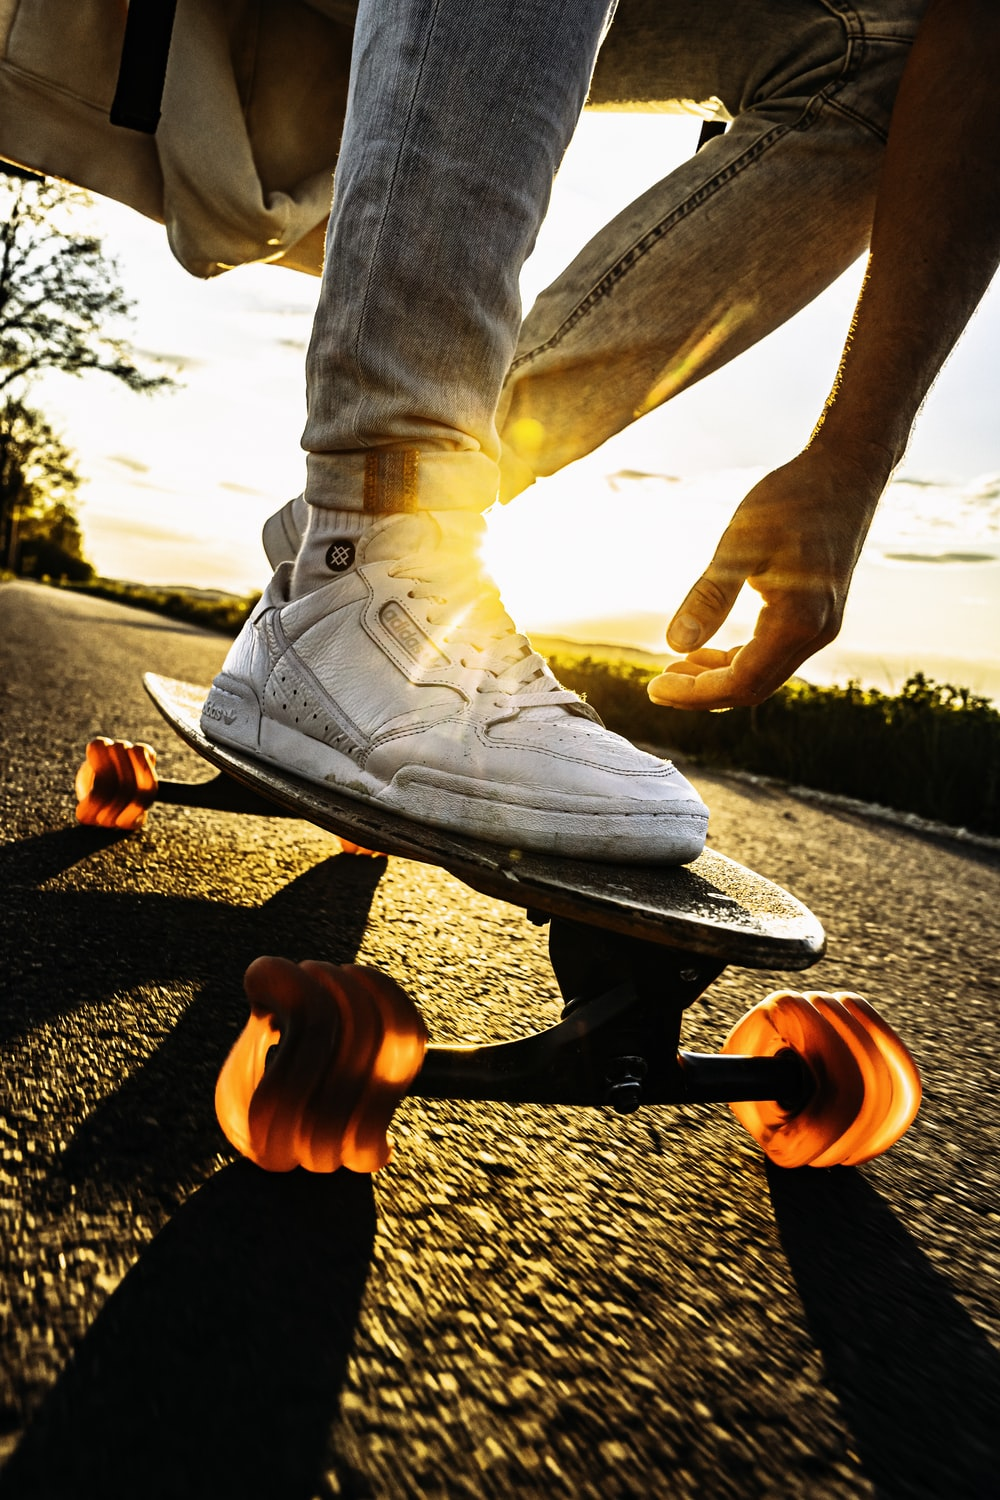 person in white pants and white shoes riding skateboard during daytime